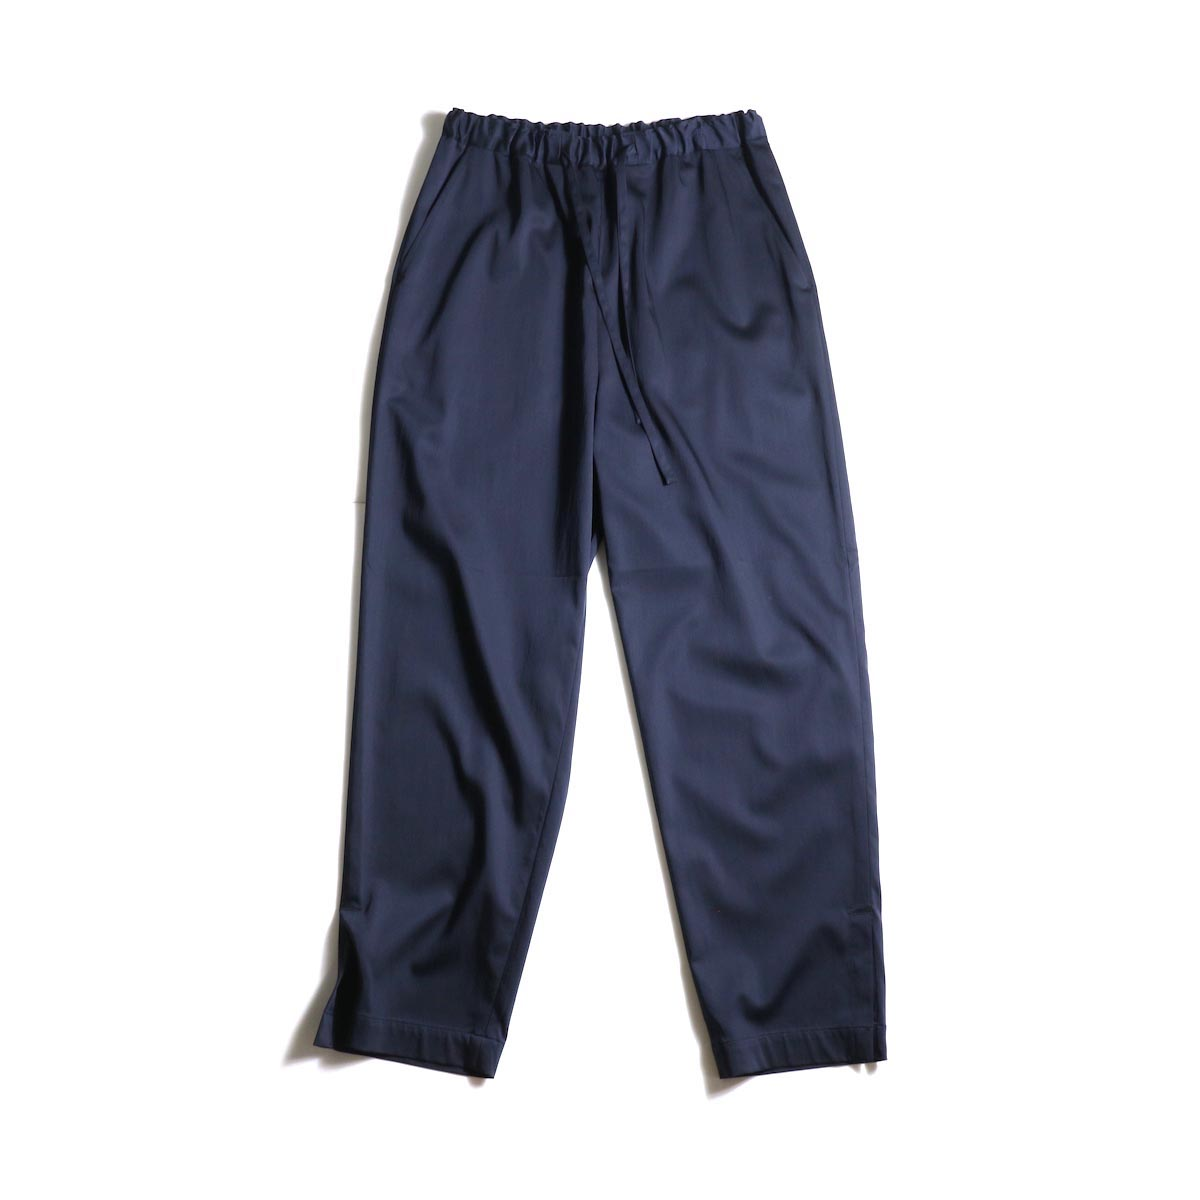 MY___ / EASY GATHER PANTS (Navy)正面